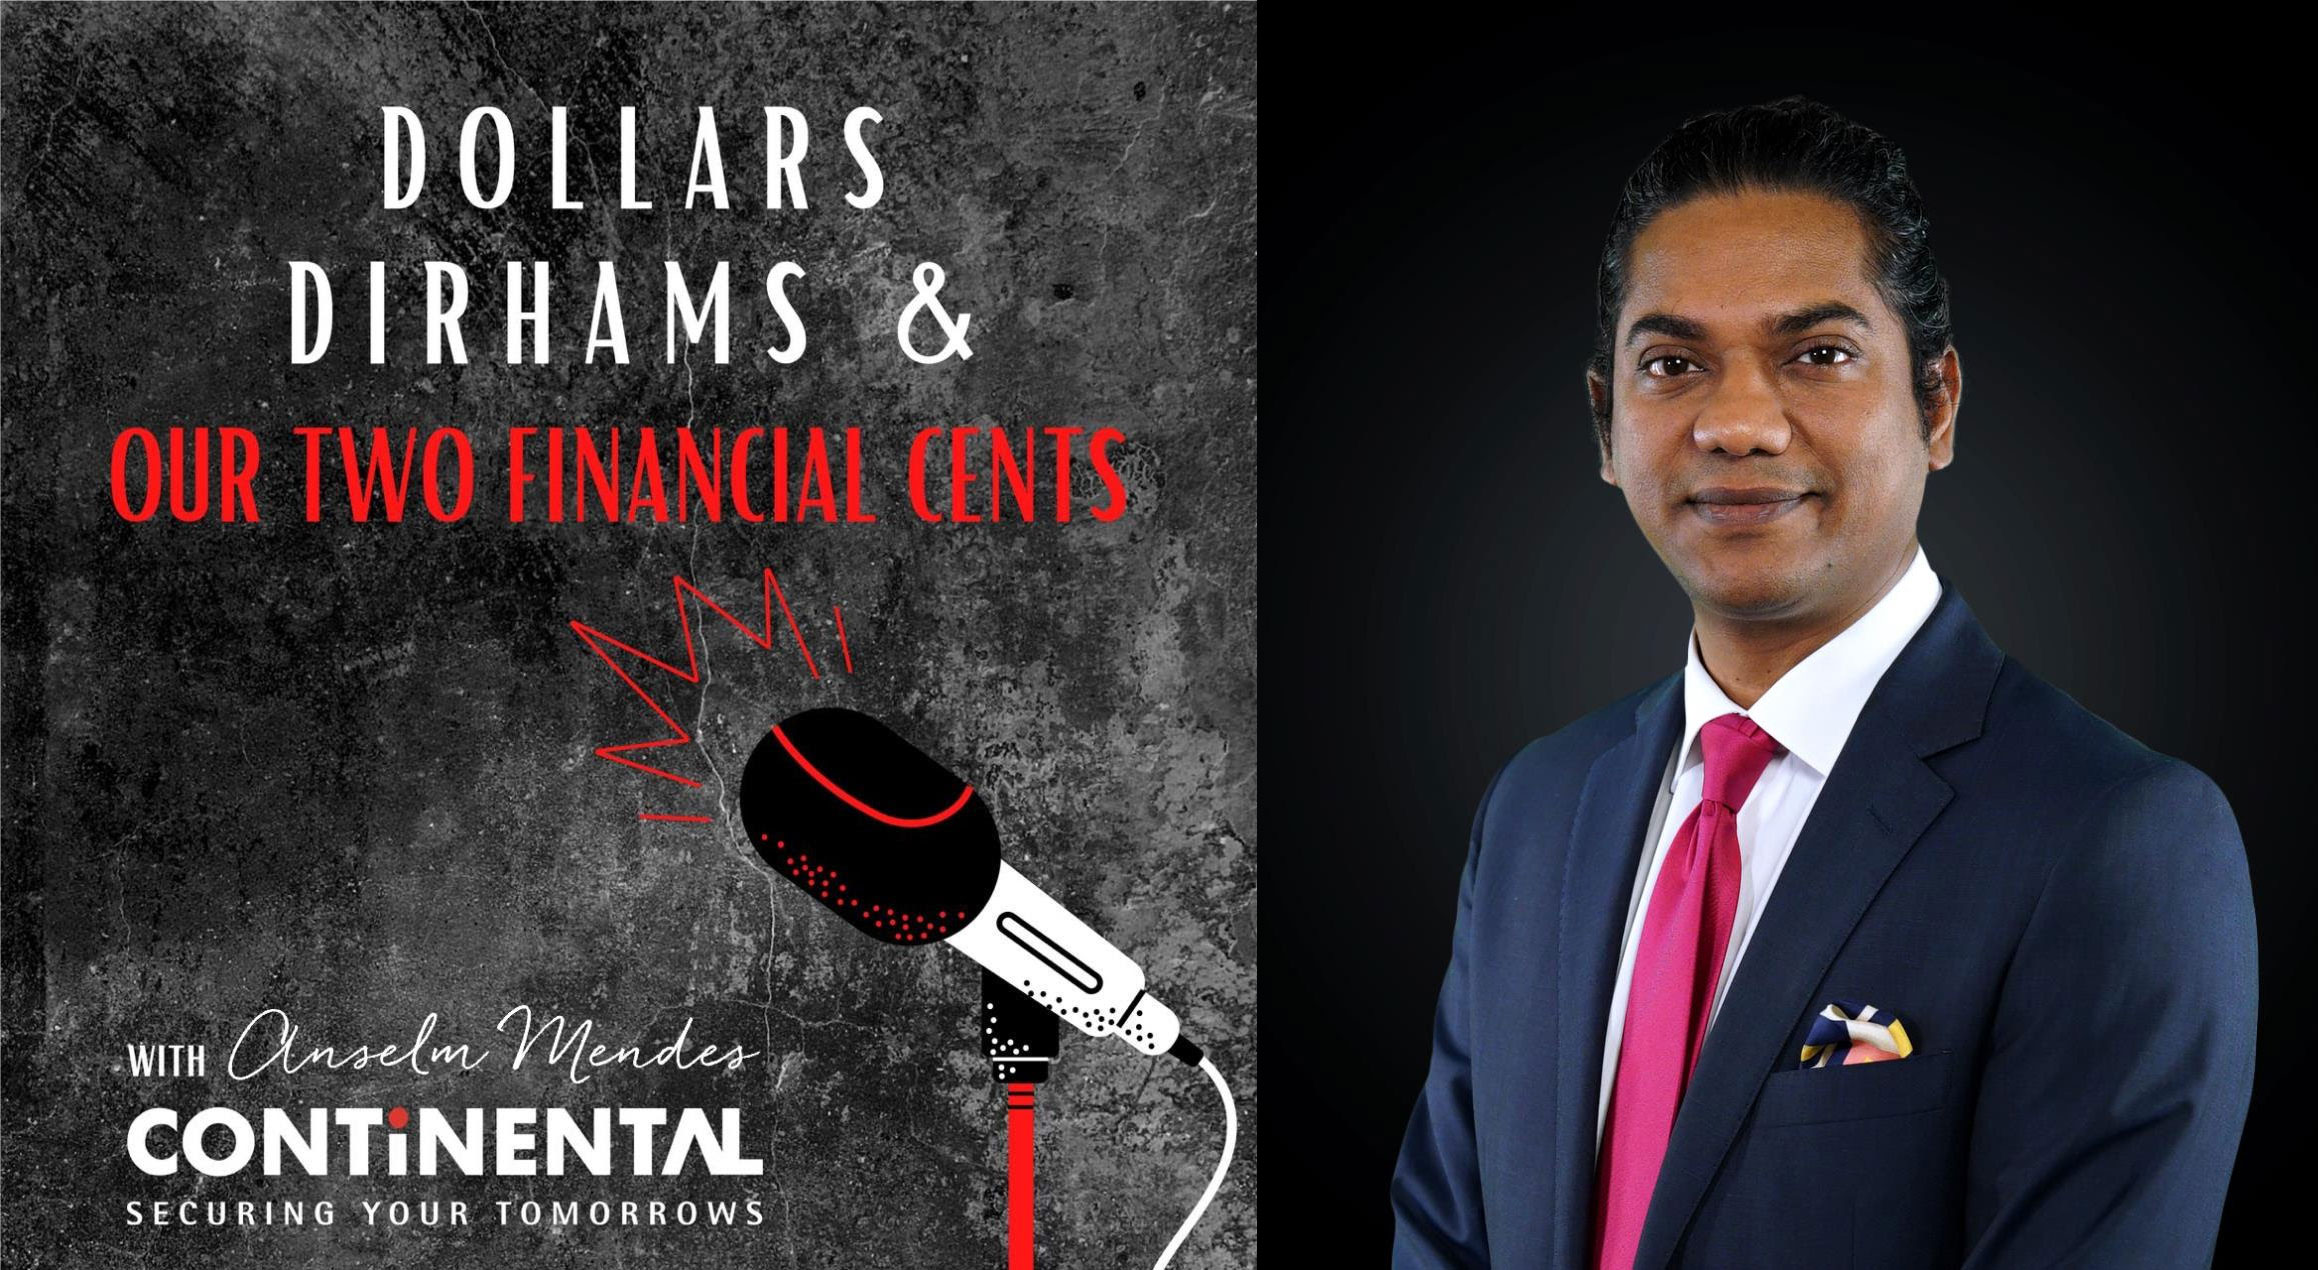 The Continental Group launches podcast featuring experts' advice and tips on becoming financially savvy and secure